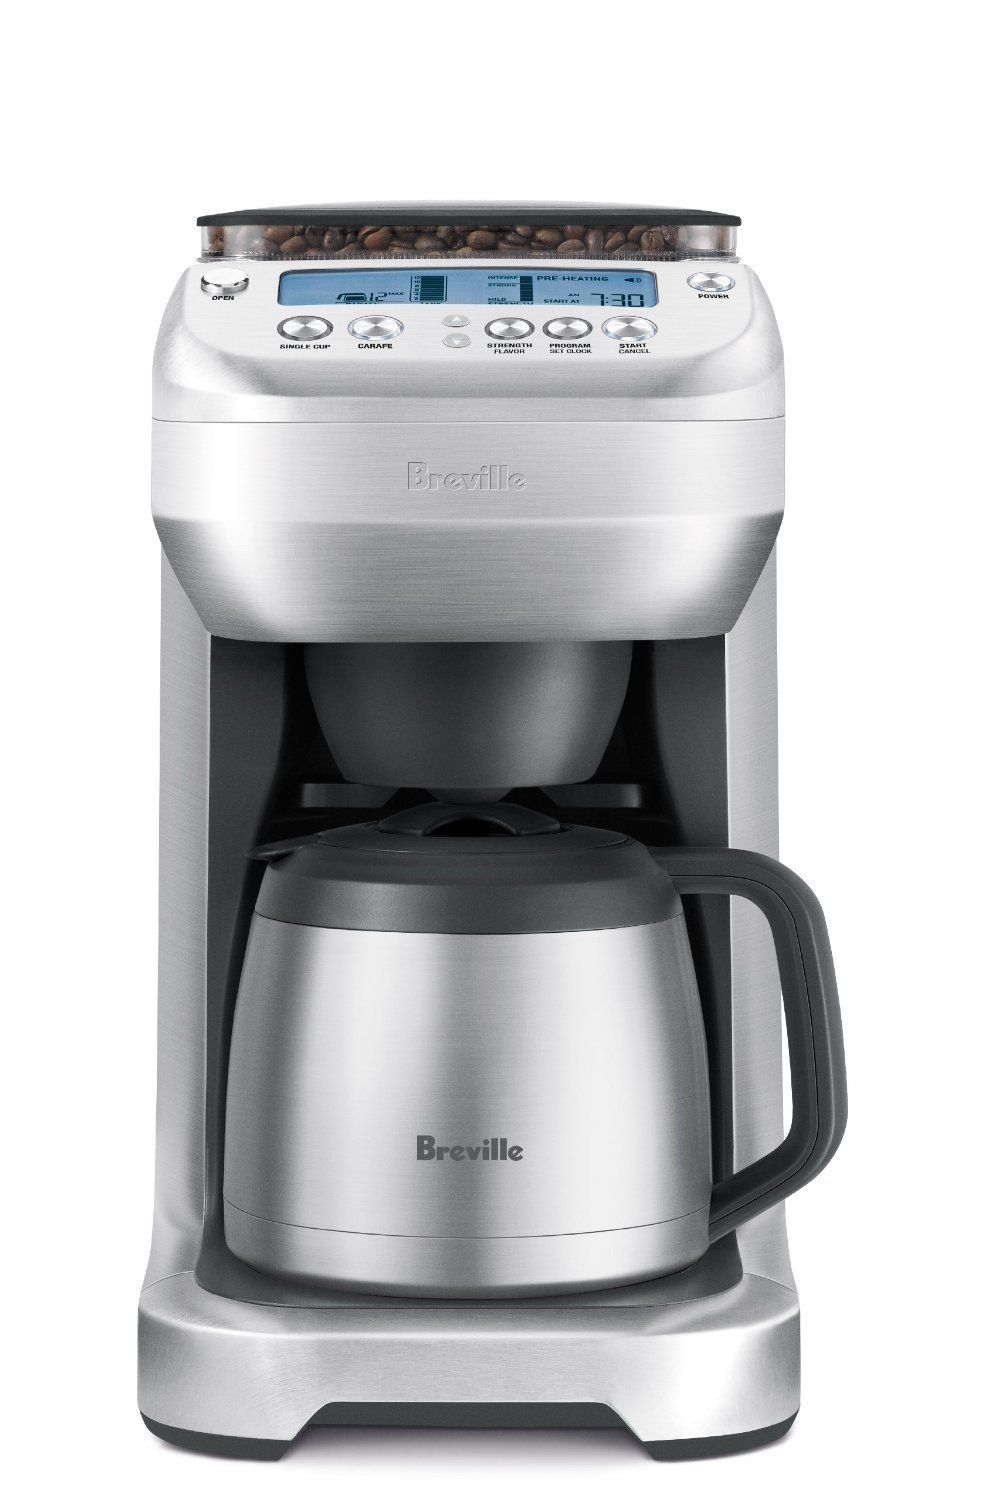 Breville BDC600XL YouBrew Drip Coffee Maker The first